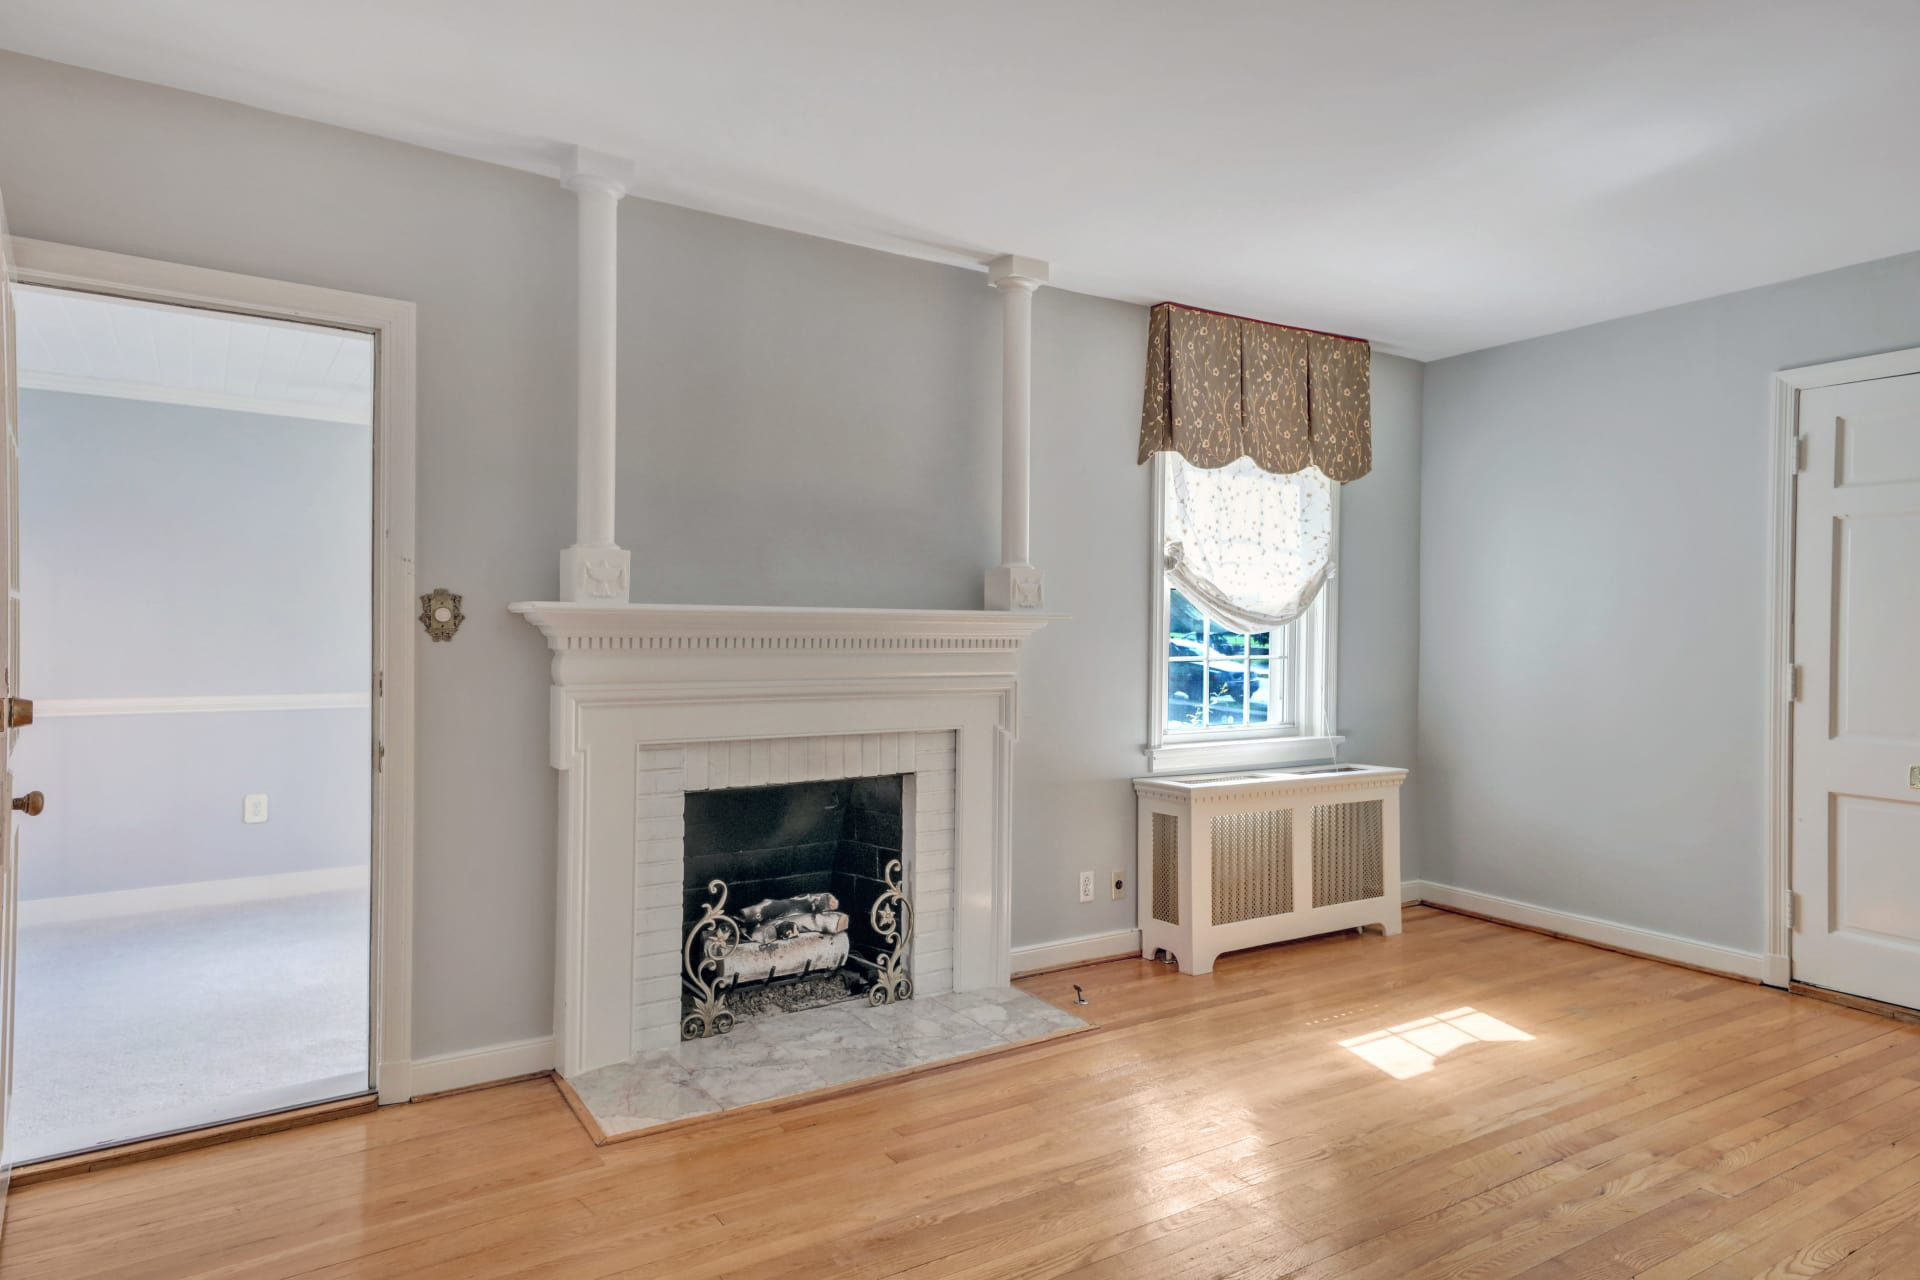 best deal hardwood floor molding of 4304 grove ave richmond virginia 23221 jamie younger virginia with regard to property details